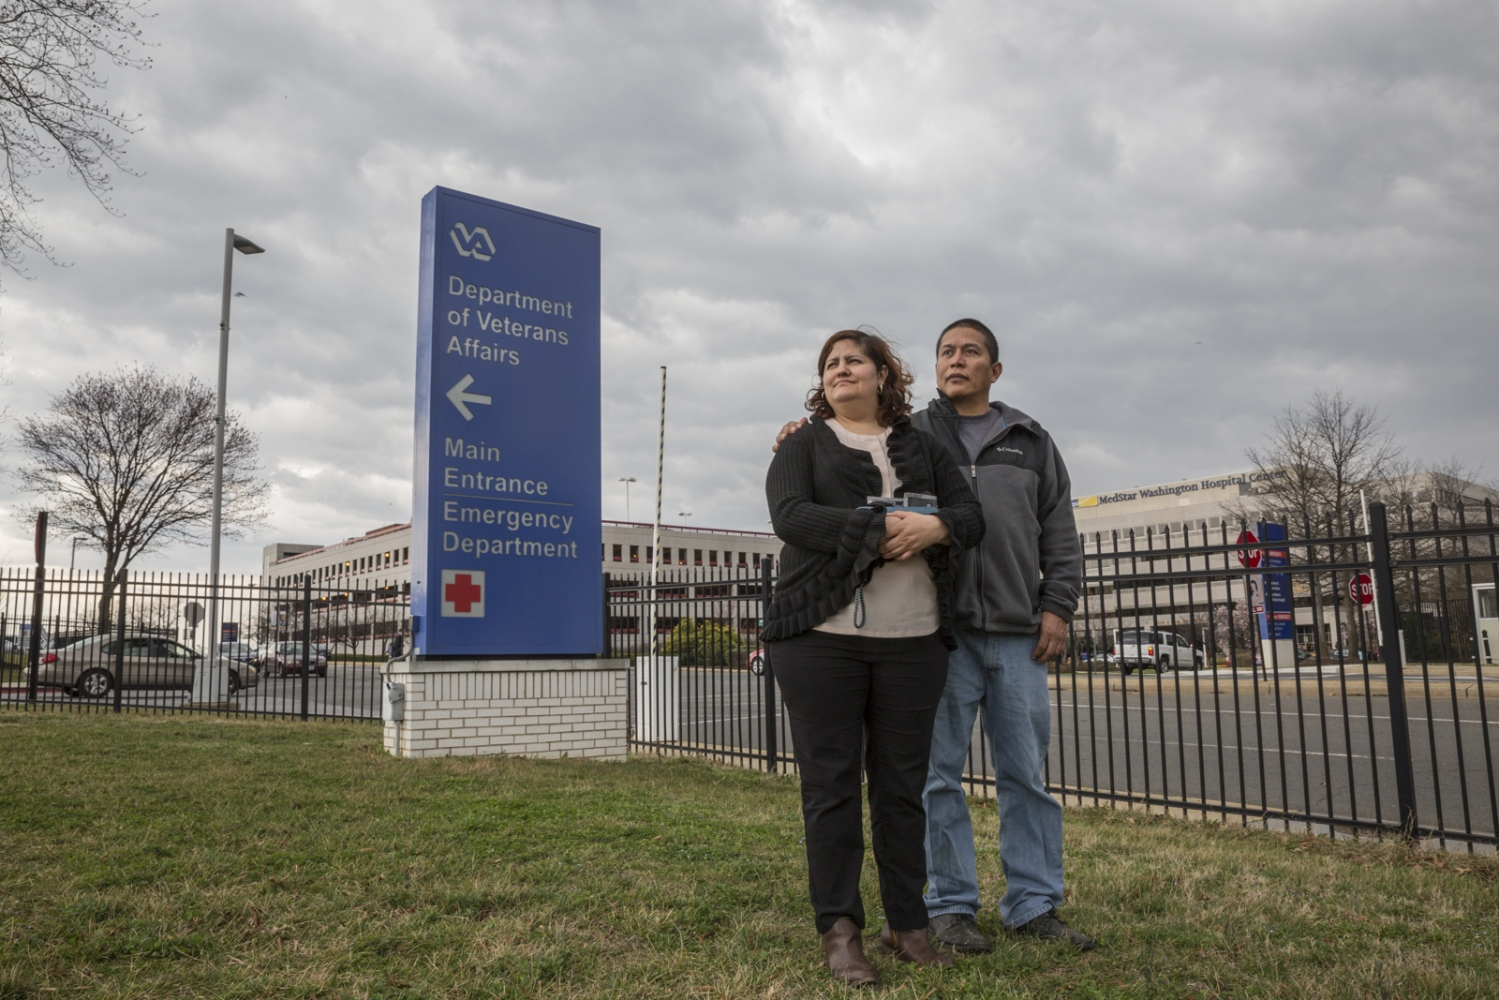 Army veteran Ricardo Pineda and his wife Veronica Castro stand outside a V.A. hospital just before Ricardo's appointment in Washington D.C. Pineda's appointments at the V.A. hospital are frequent and Veronica always goes with him.